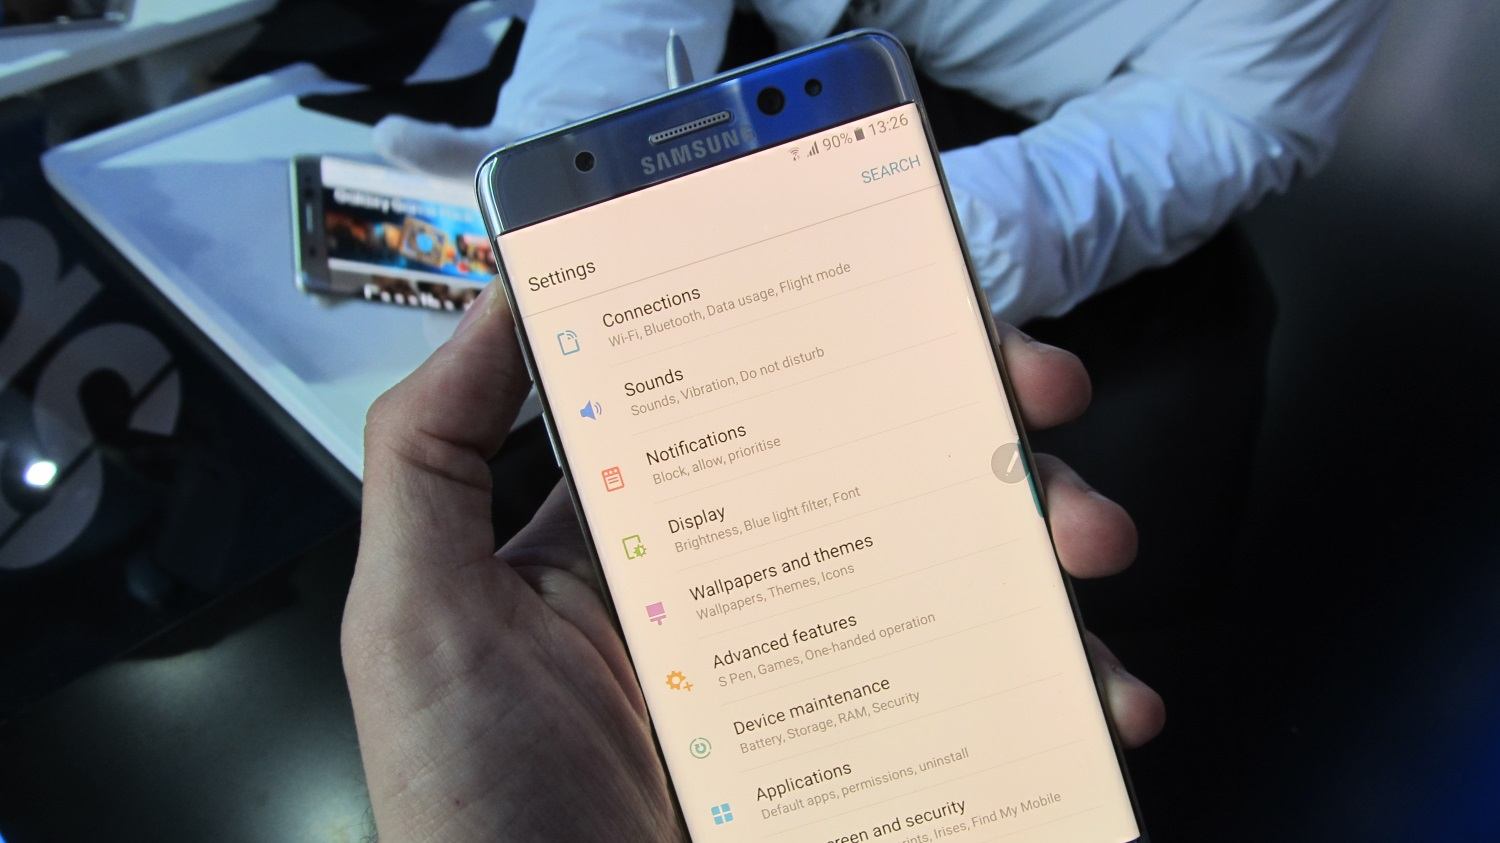 samsung galaxy note 7 hands-on (10)